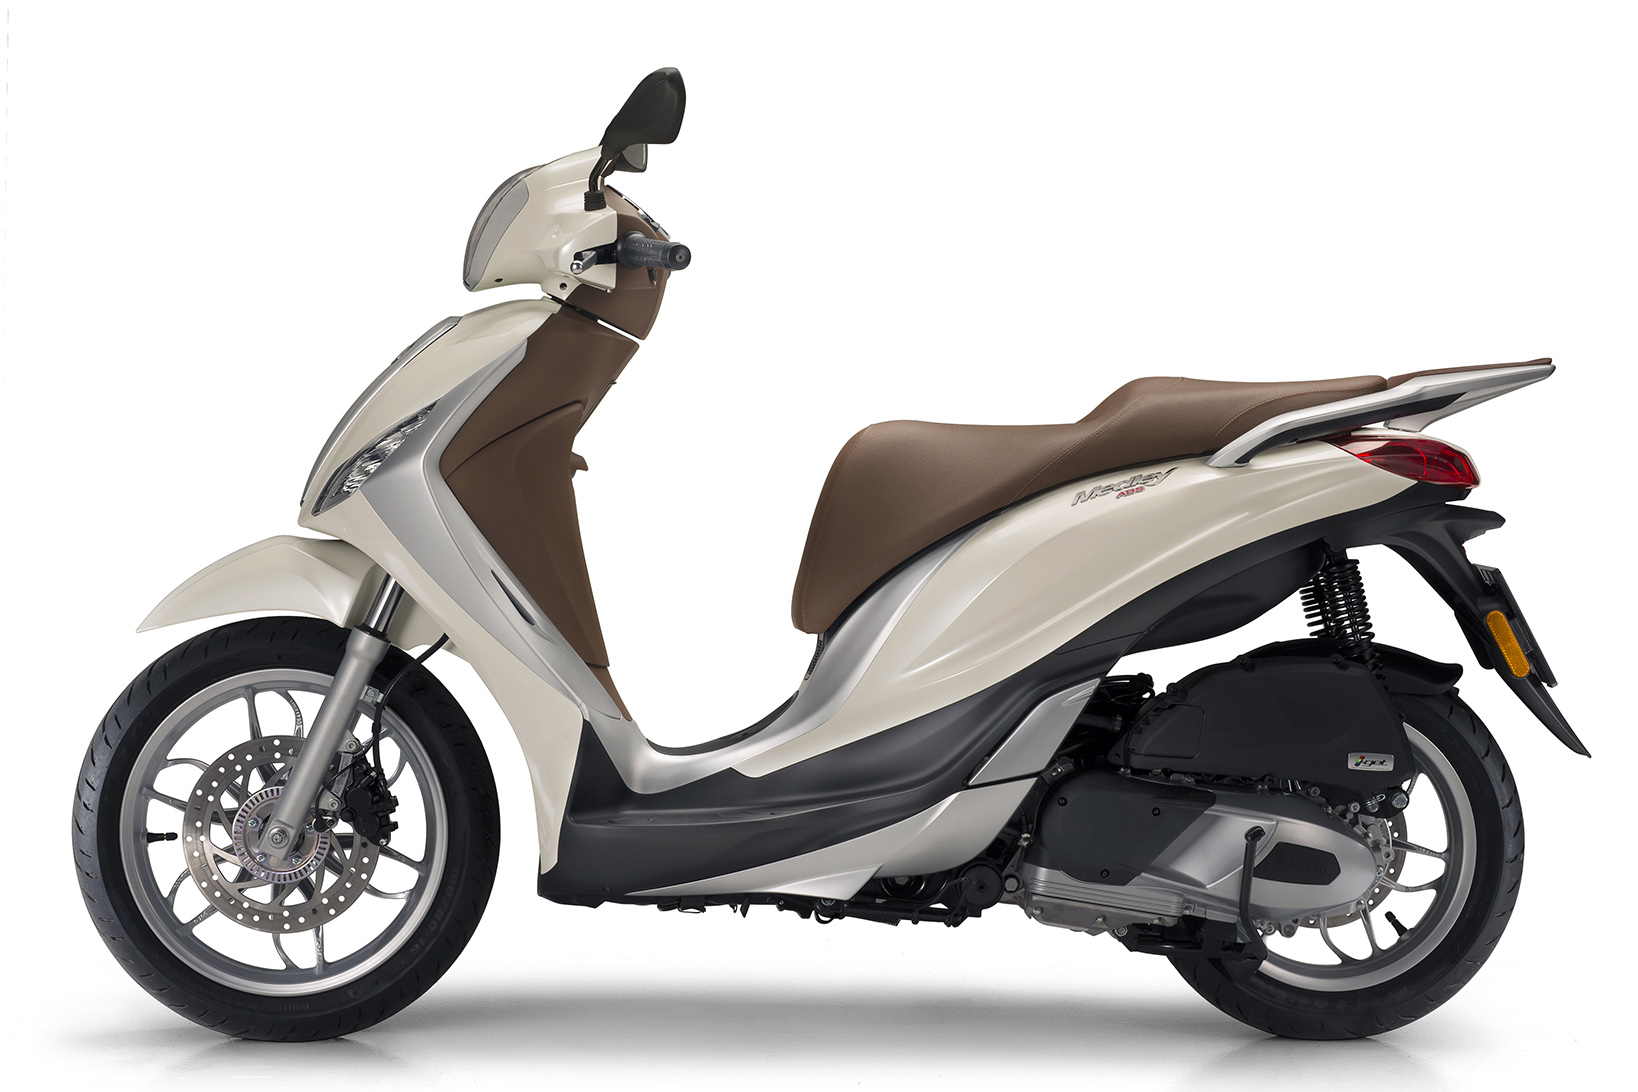 piaggio launches new medley scooter plus | visordown